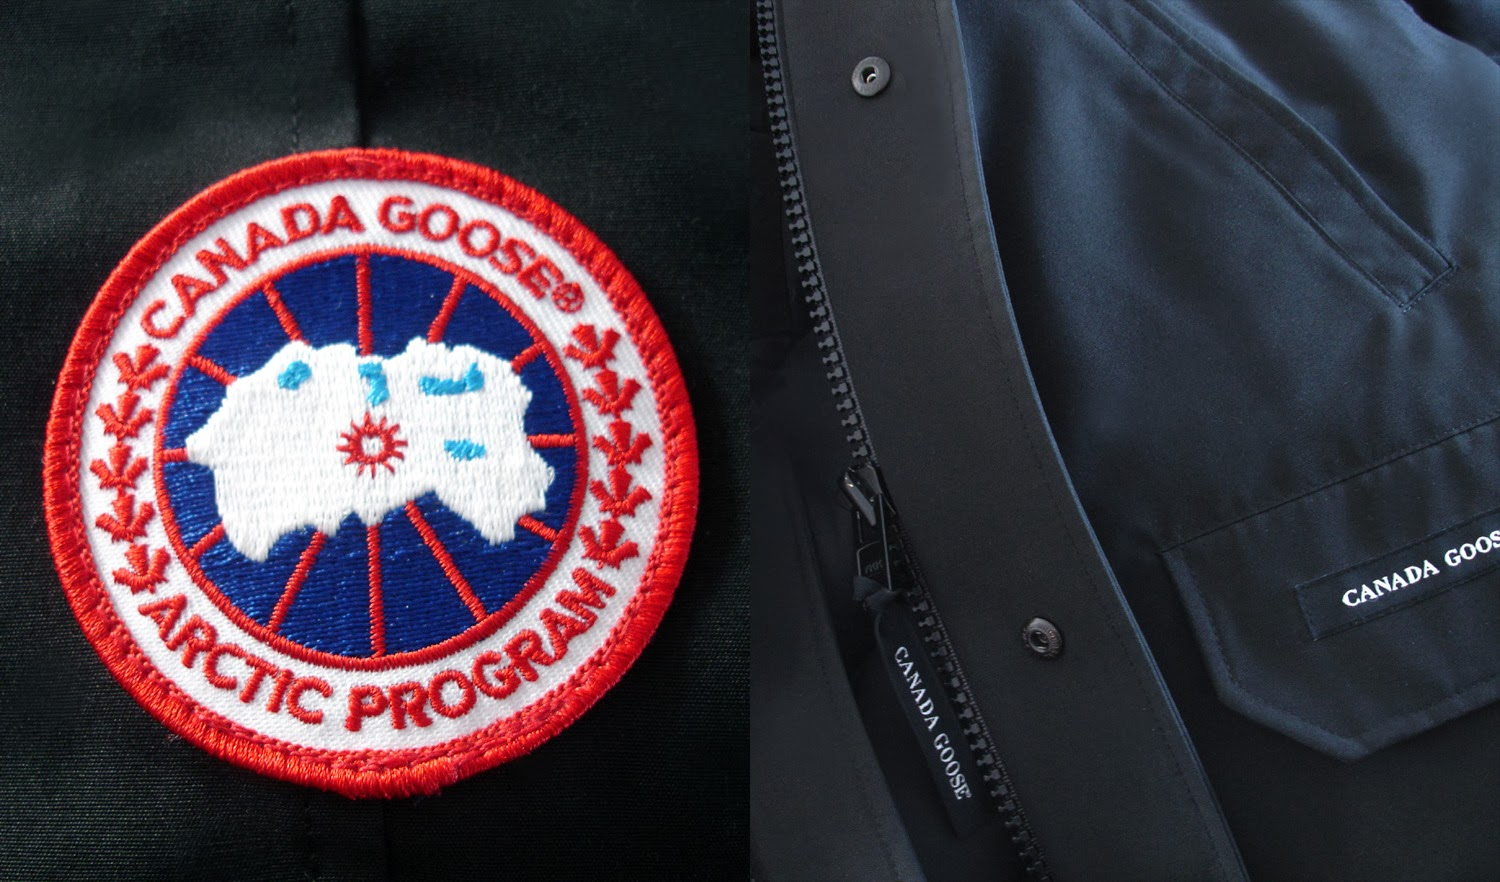 meaning of canada goose logo